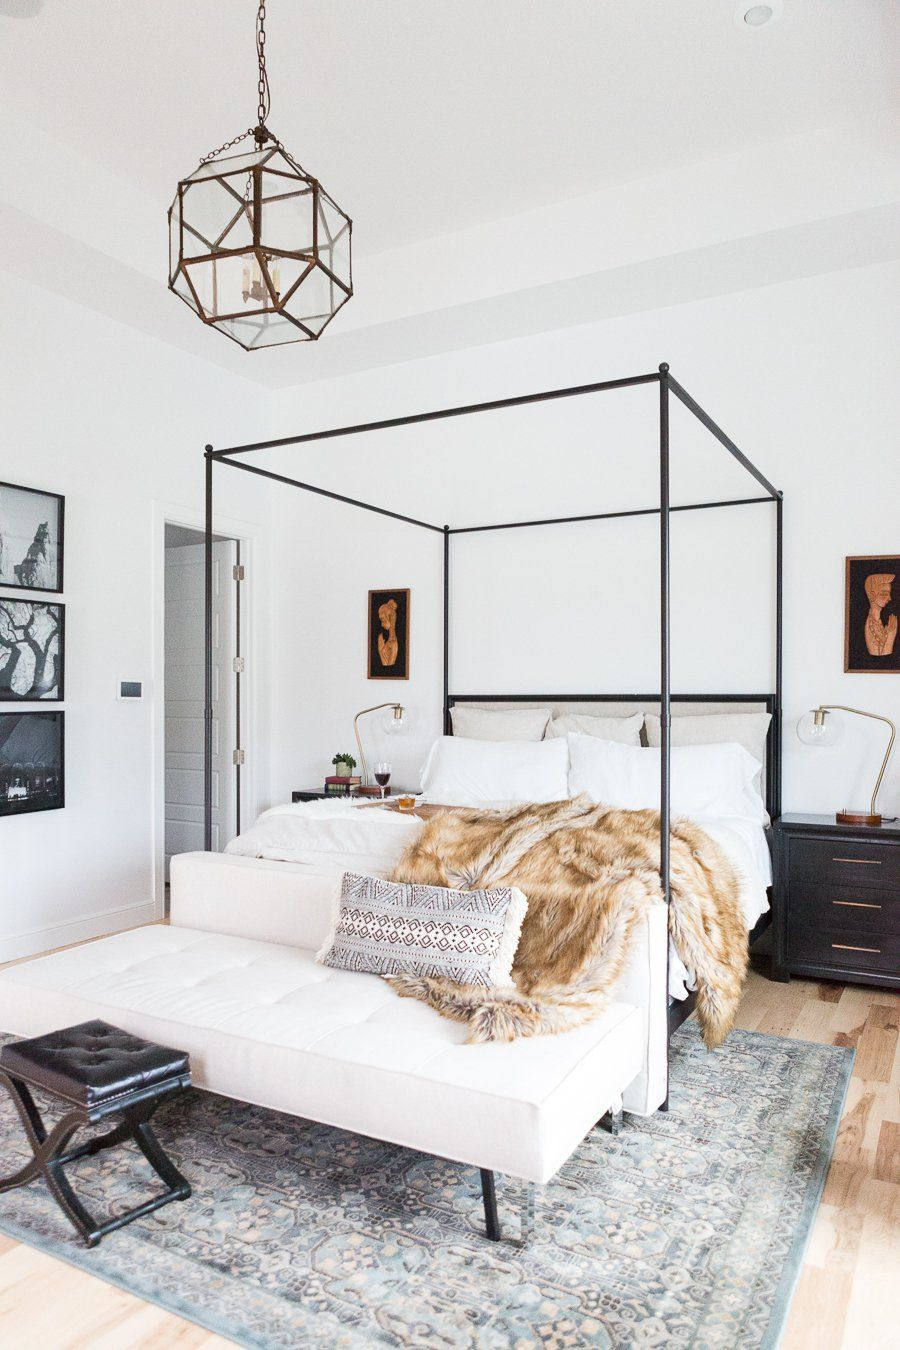 5 Tips for Creating a Master Bedroom He Will Love | Bedroom ...